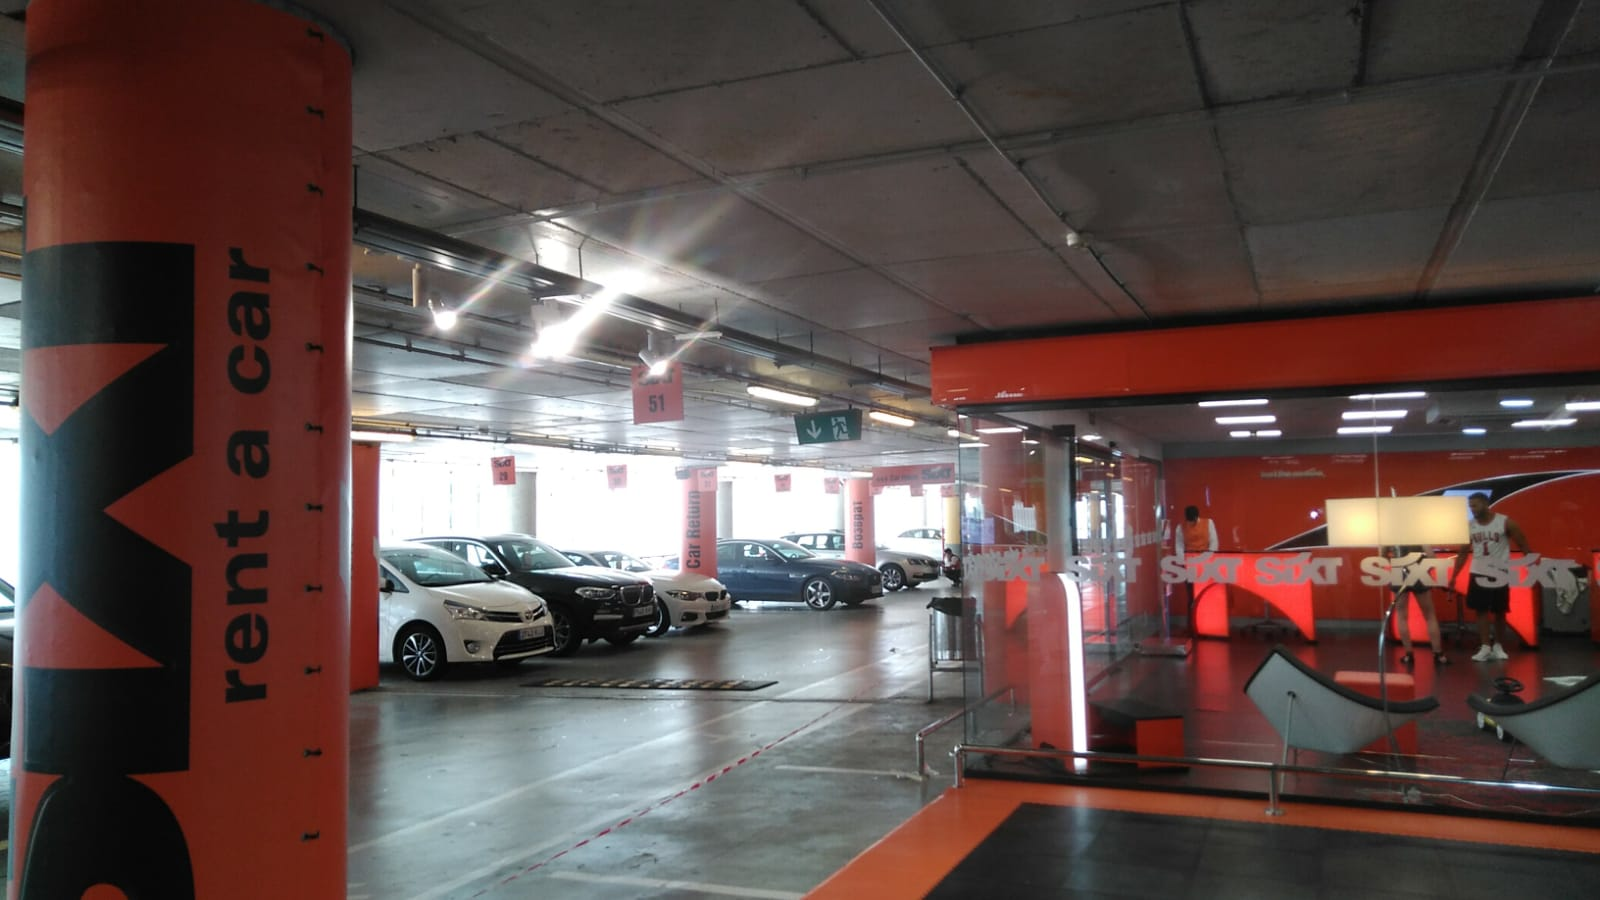 sixt t1 parking reforma 1